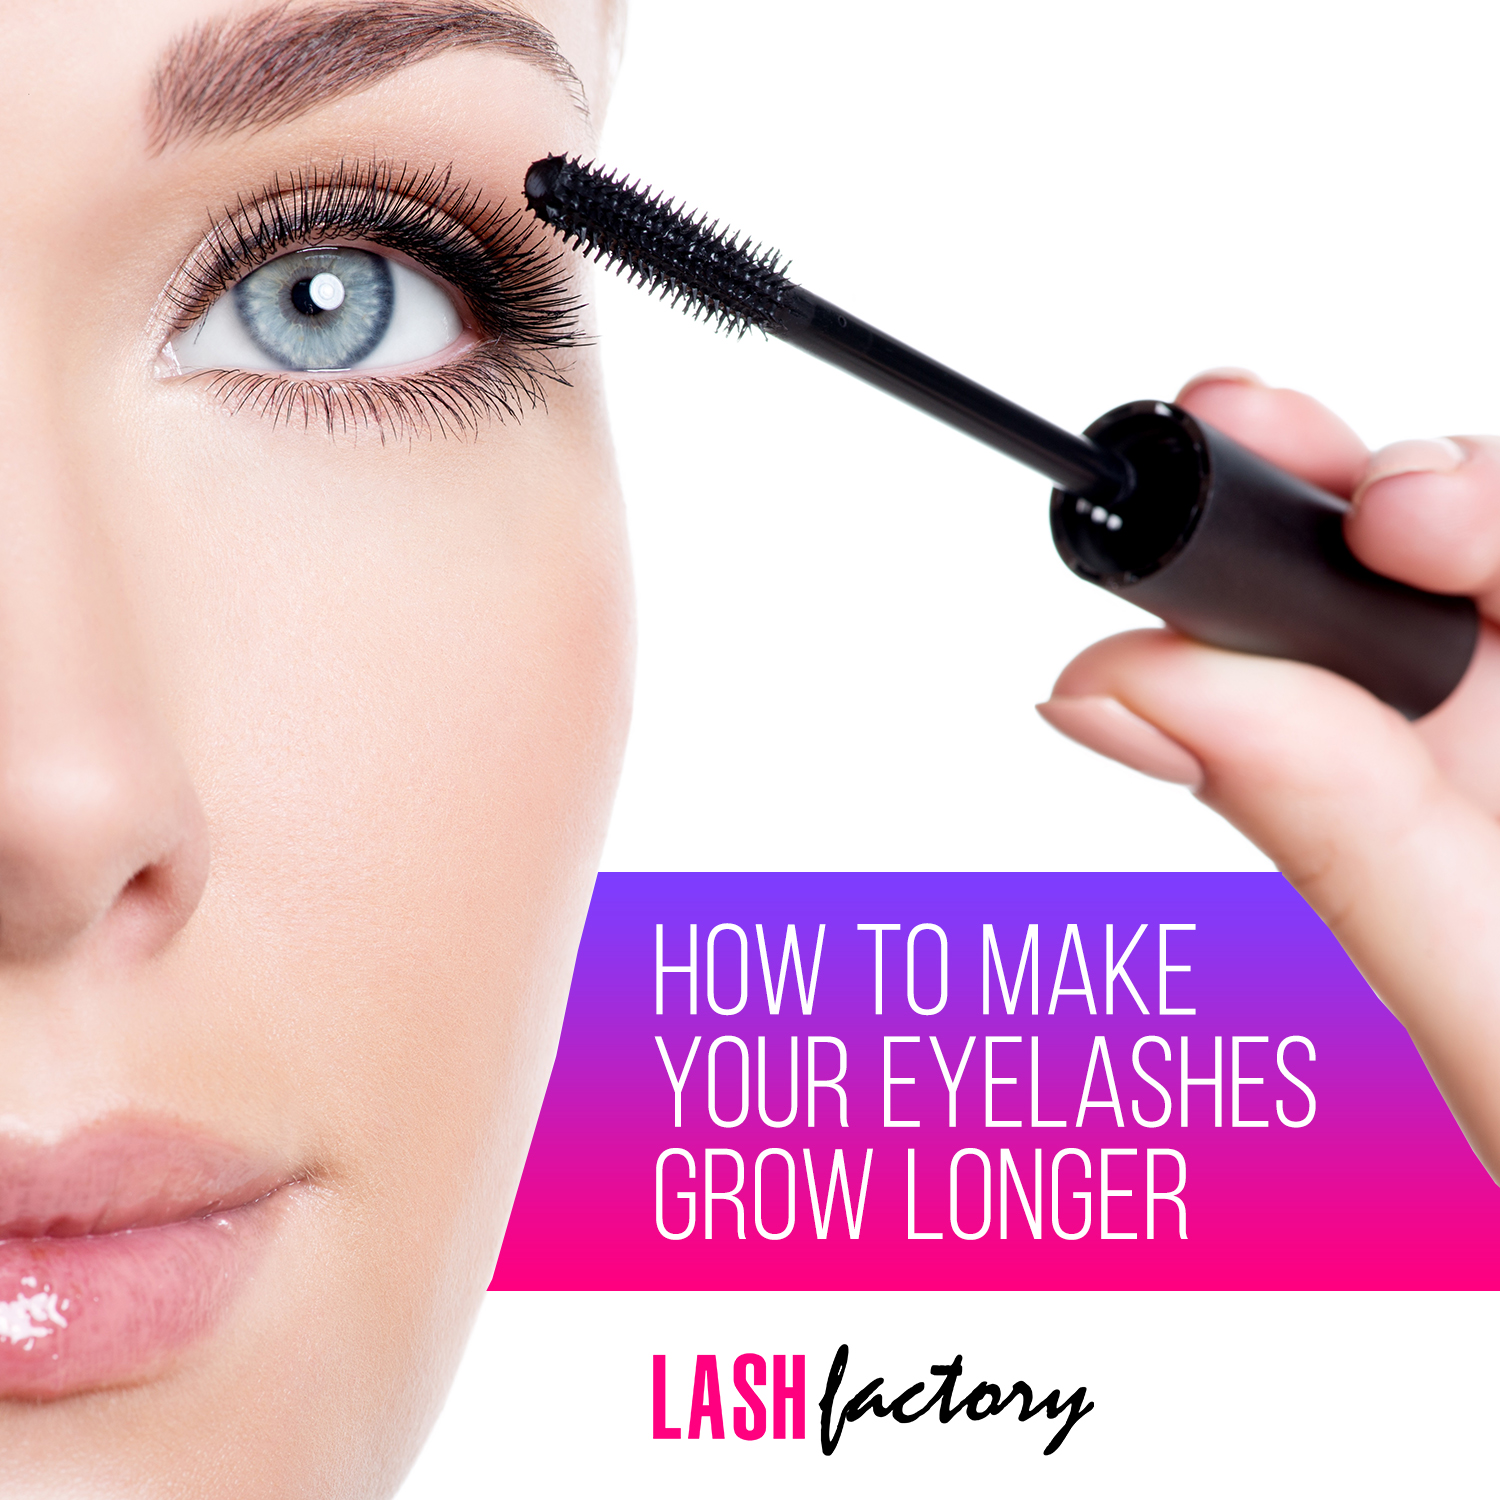 Lashes Care Tips How To Make Your Lashes Grow Longer Lash Factory